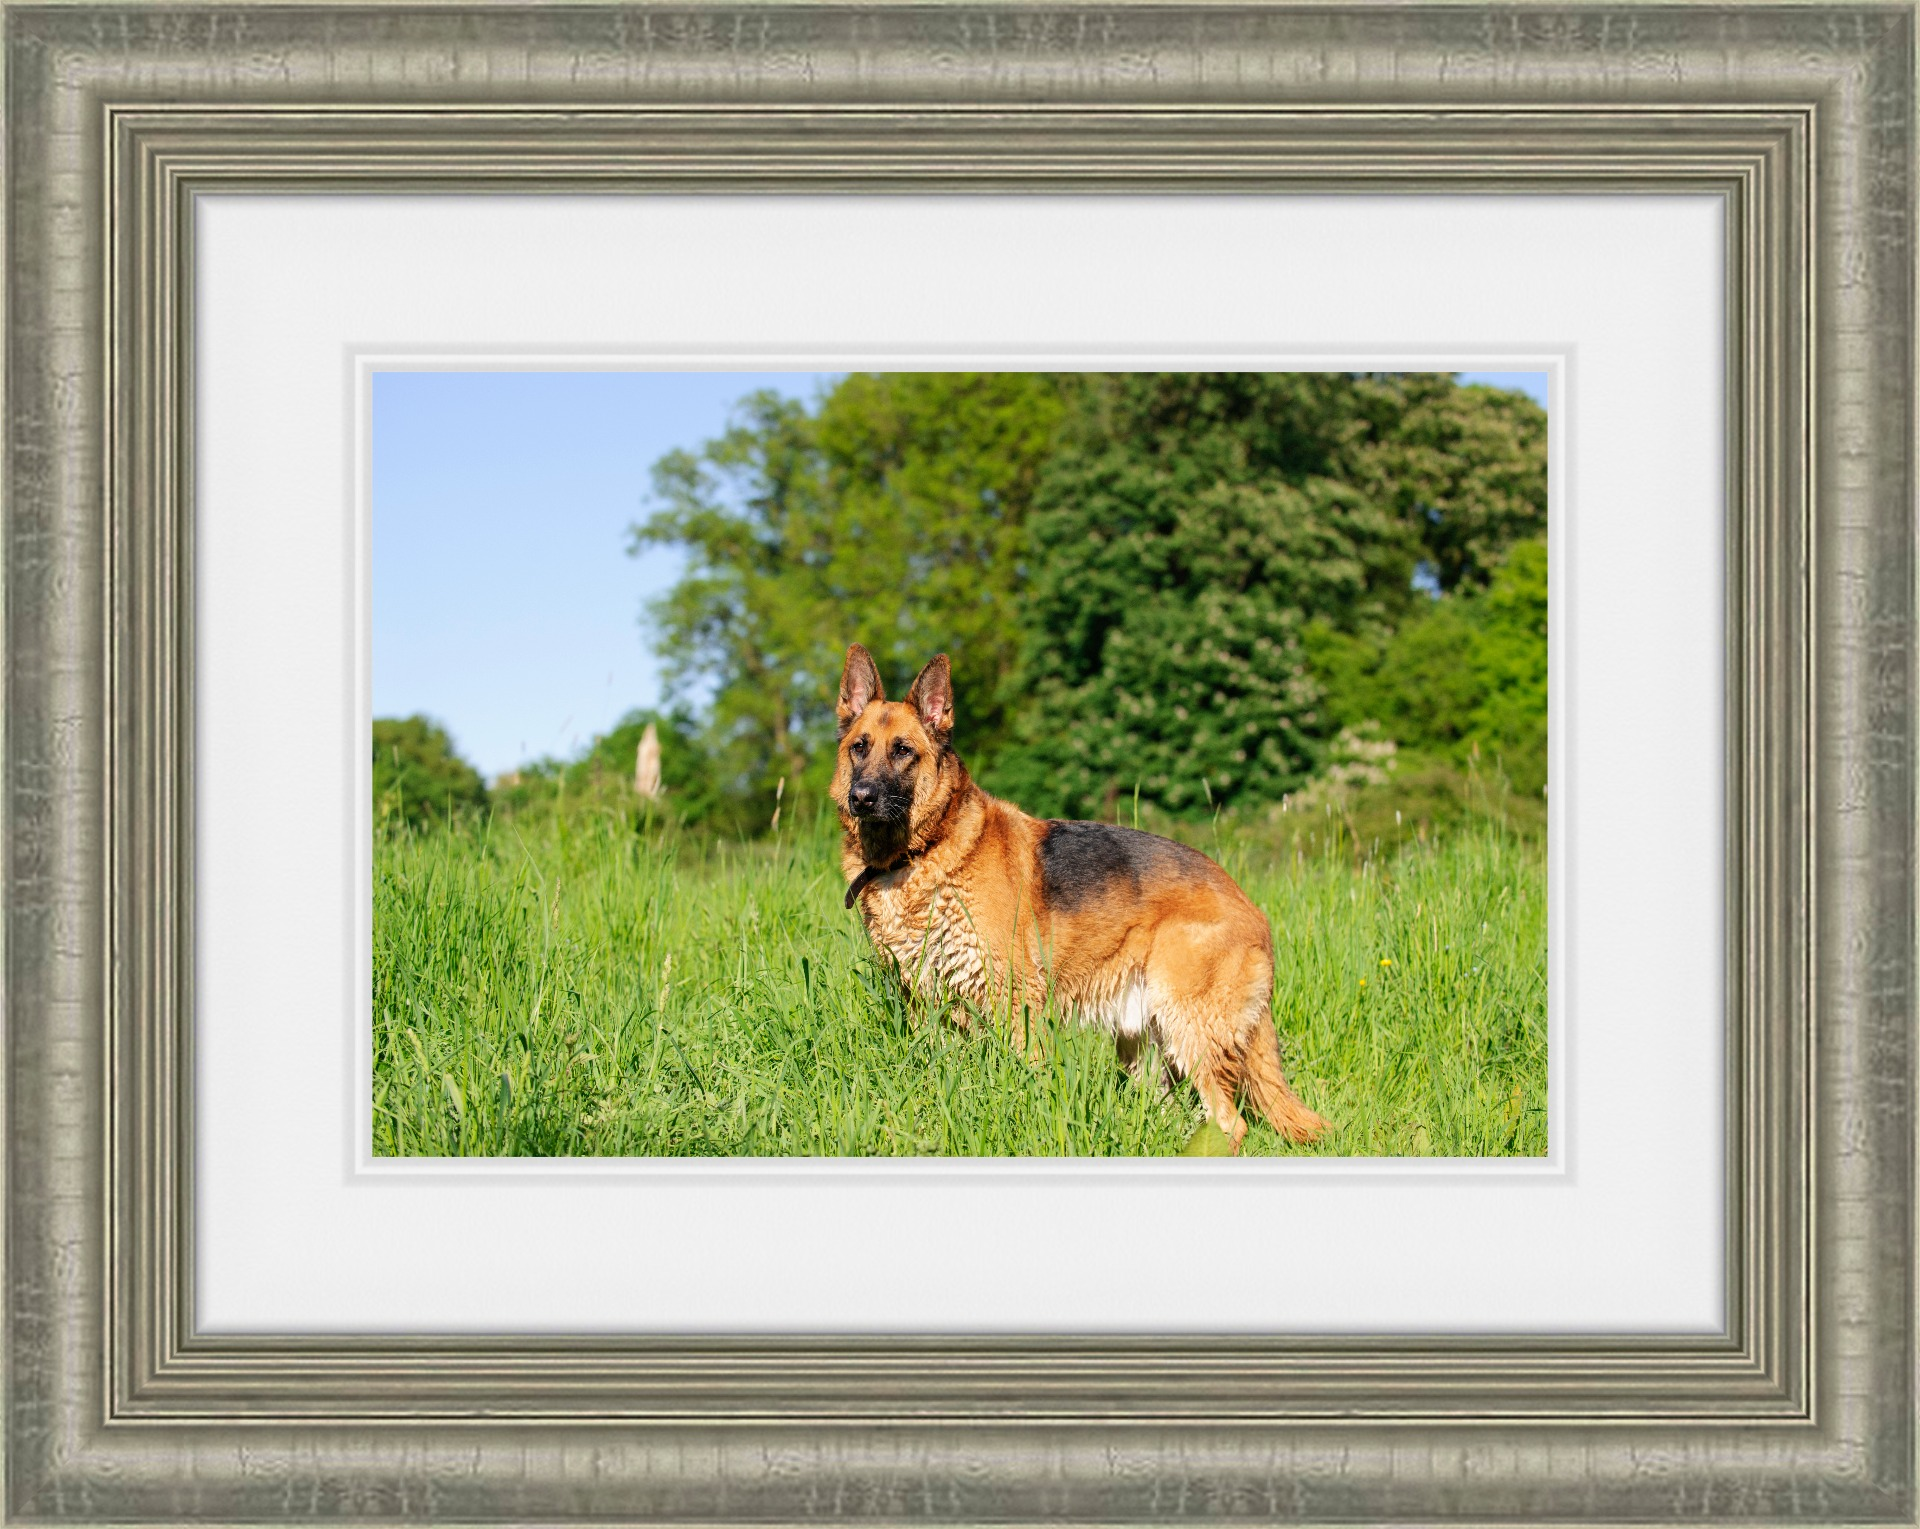 Framed Print of German Shepherd dog.